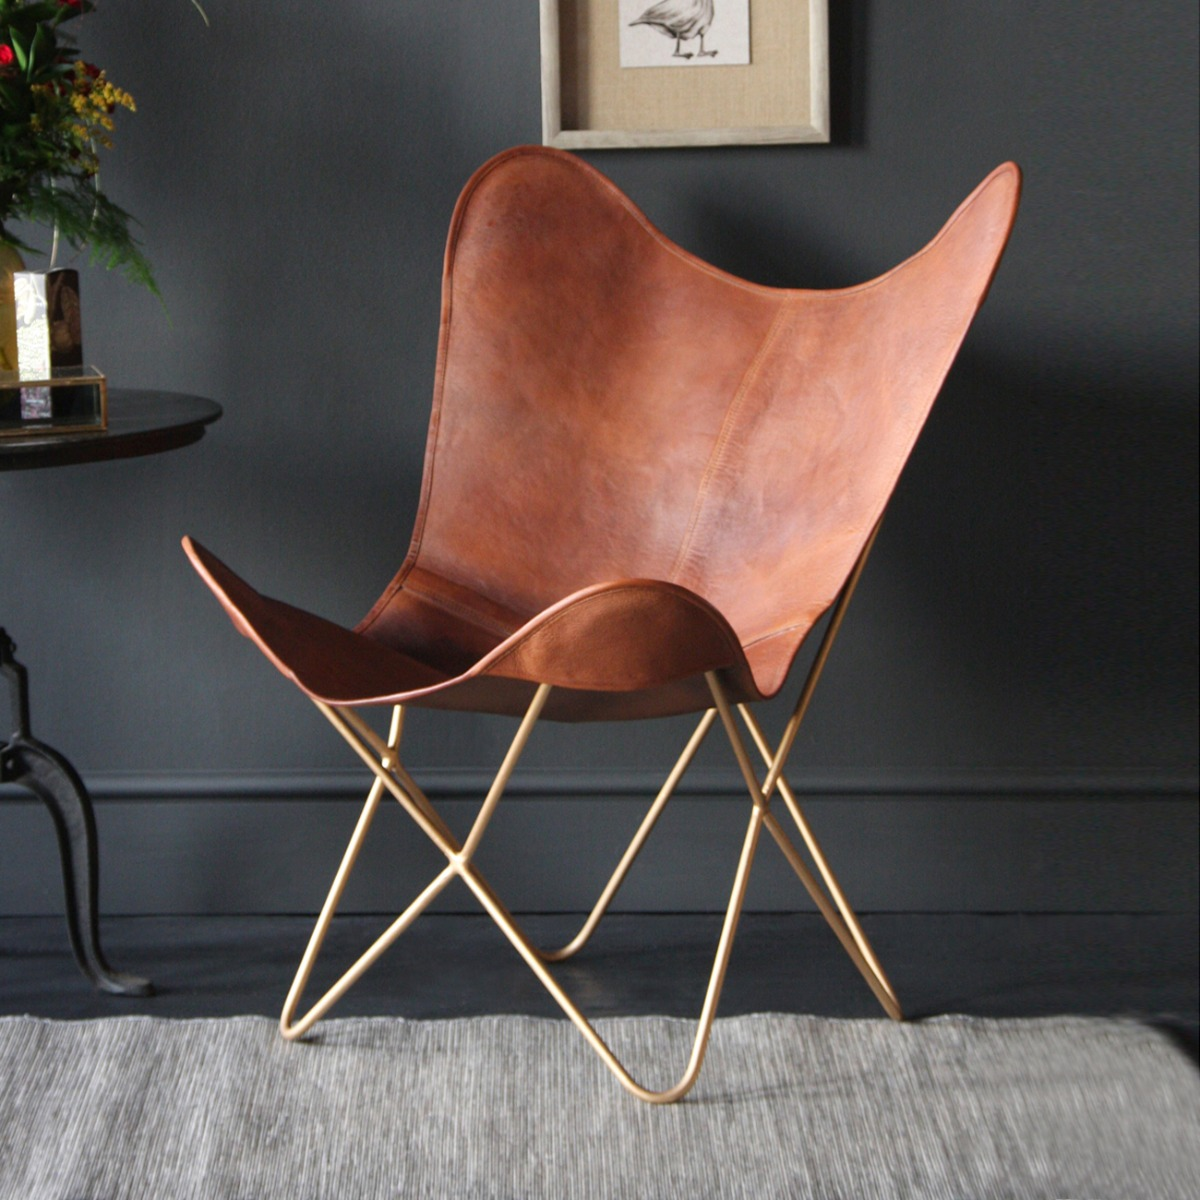 Our Butterfly Chair makes a great vintage option for the home.